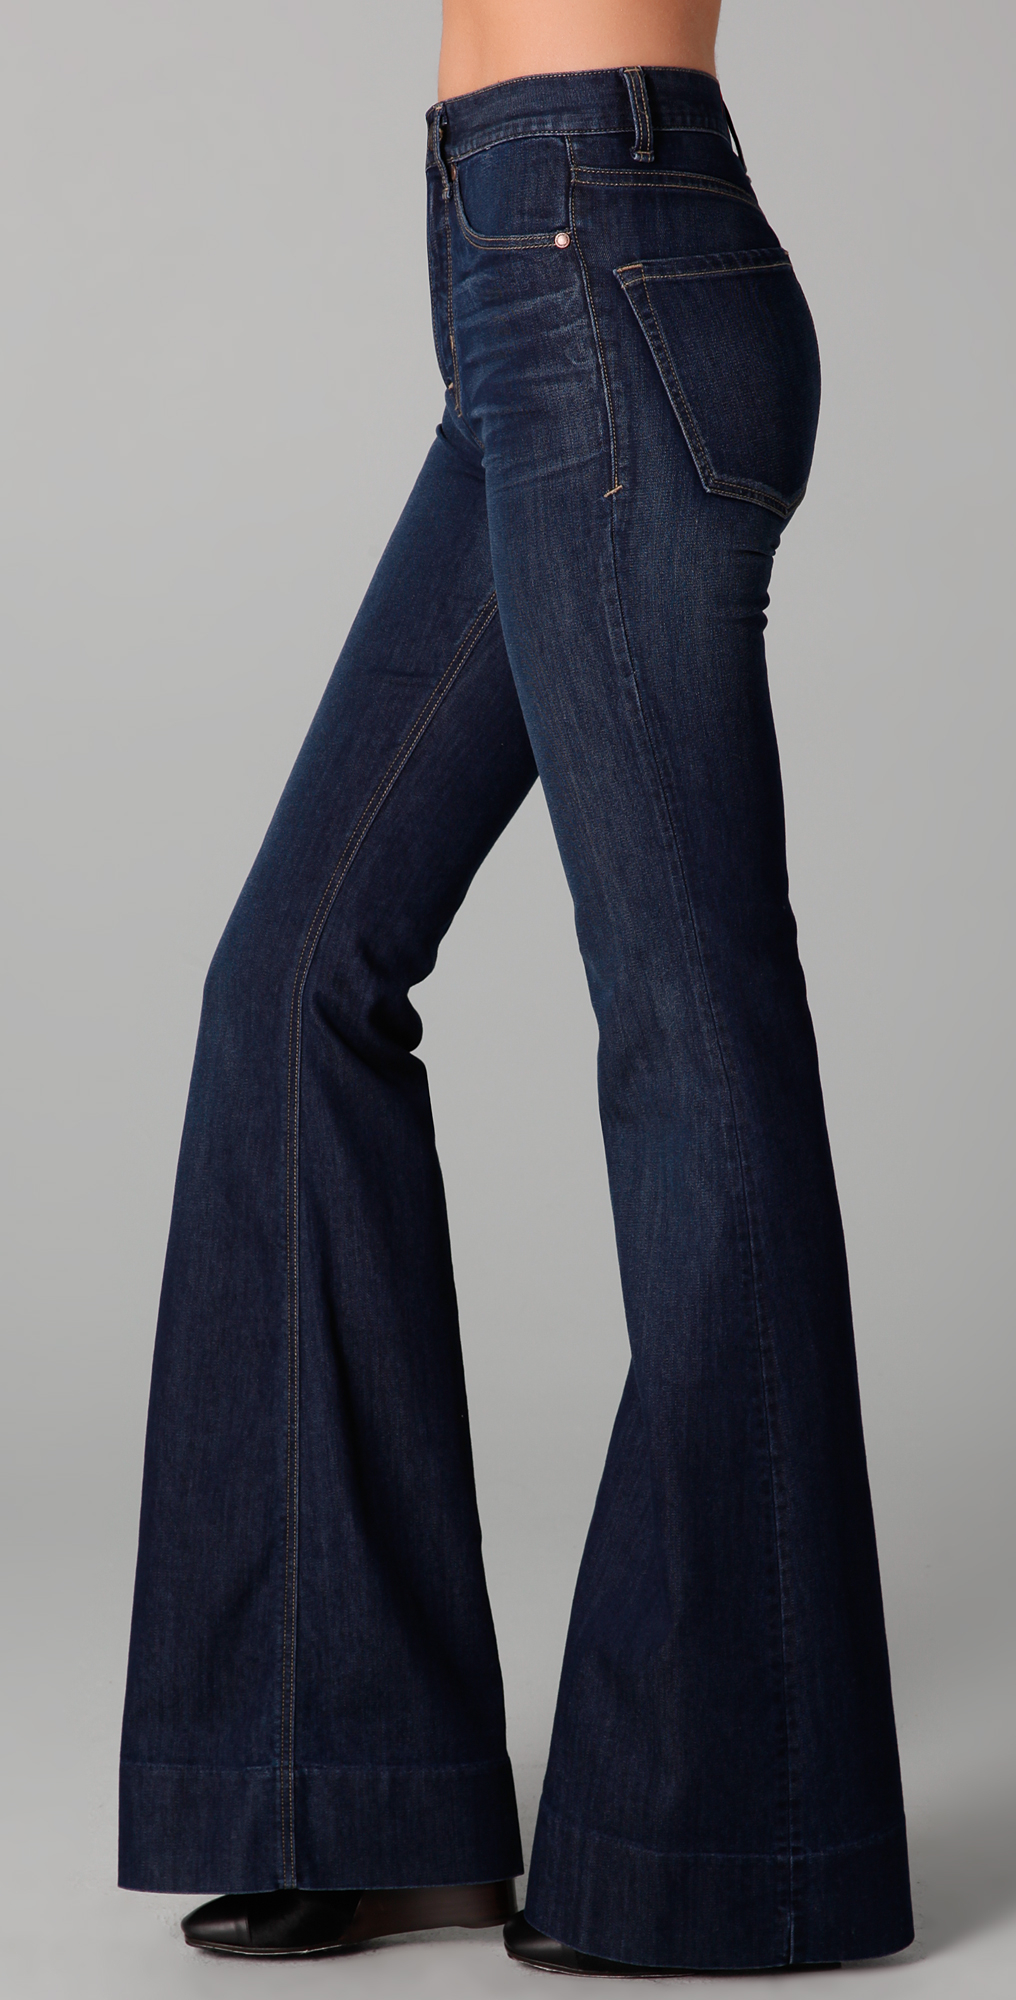 Marc by marc jacobs Standard Supply 70s Flare Jeans in Blue | Lyst